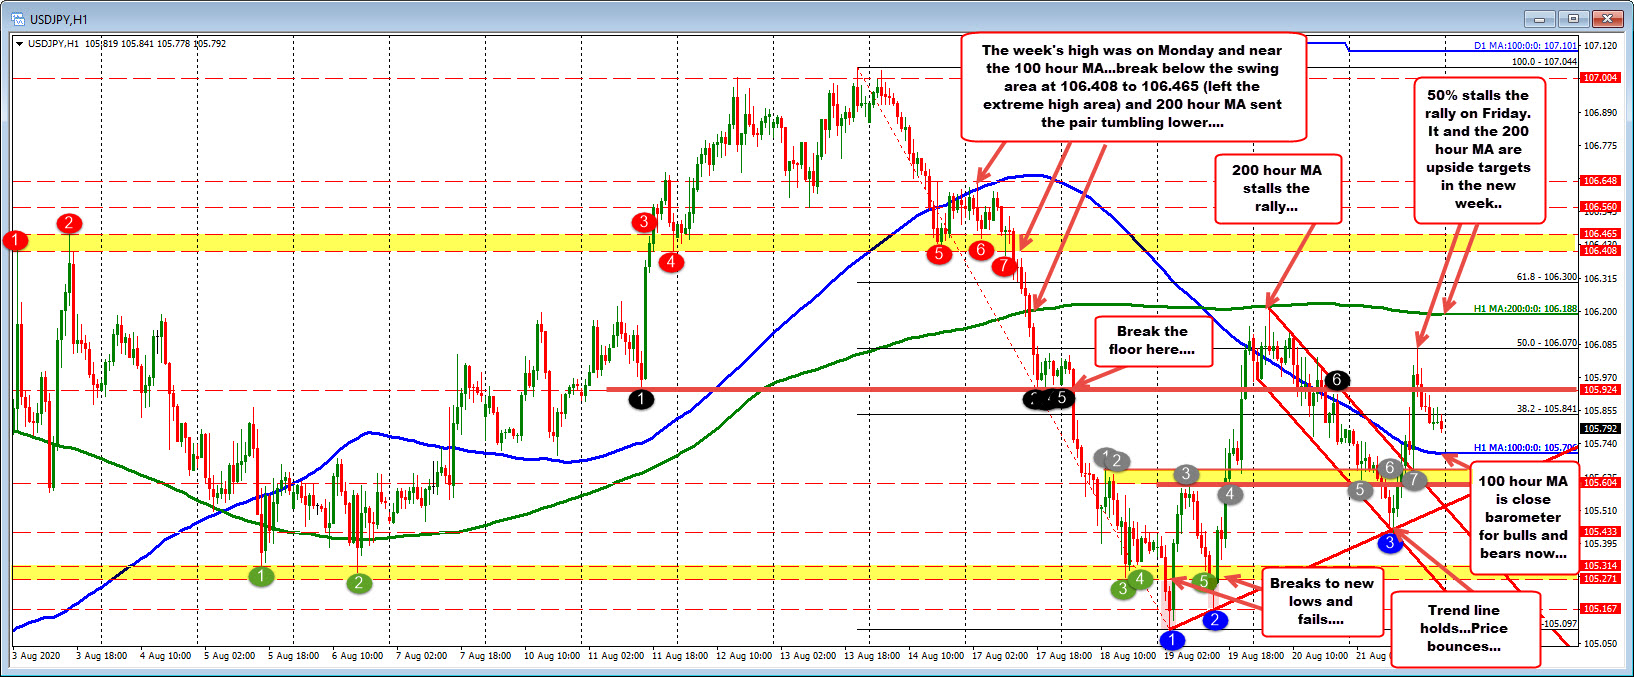 What happened in the USDJPY last week (and it's significance in the pairs story) and where we may be going...